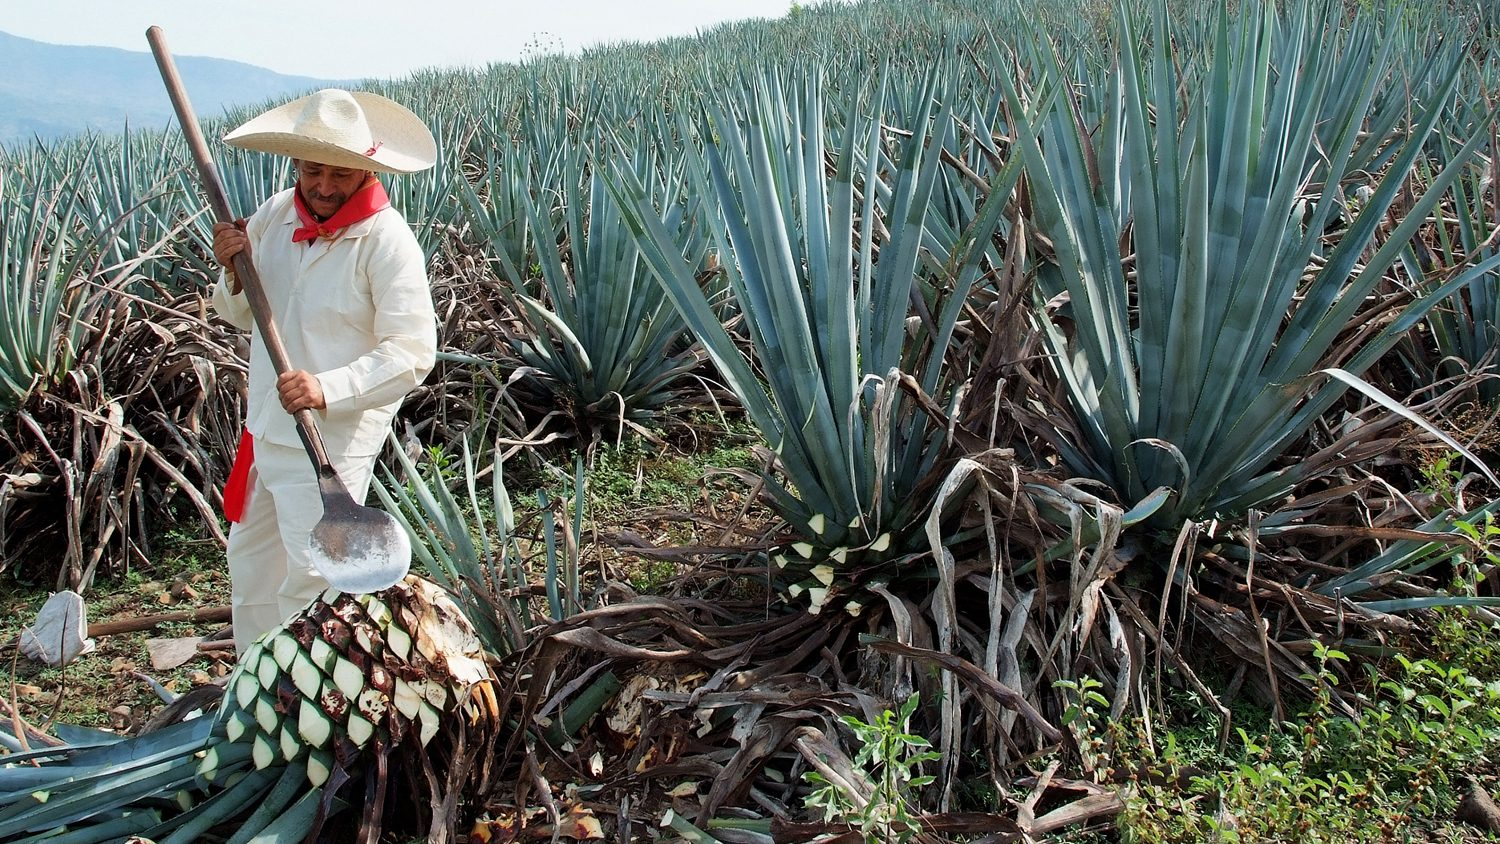 Mexican farmer at work in a field